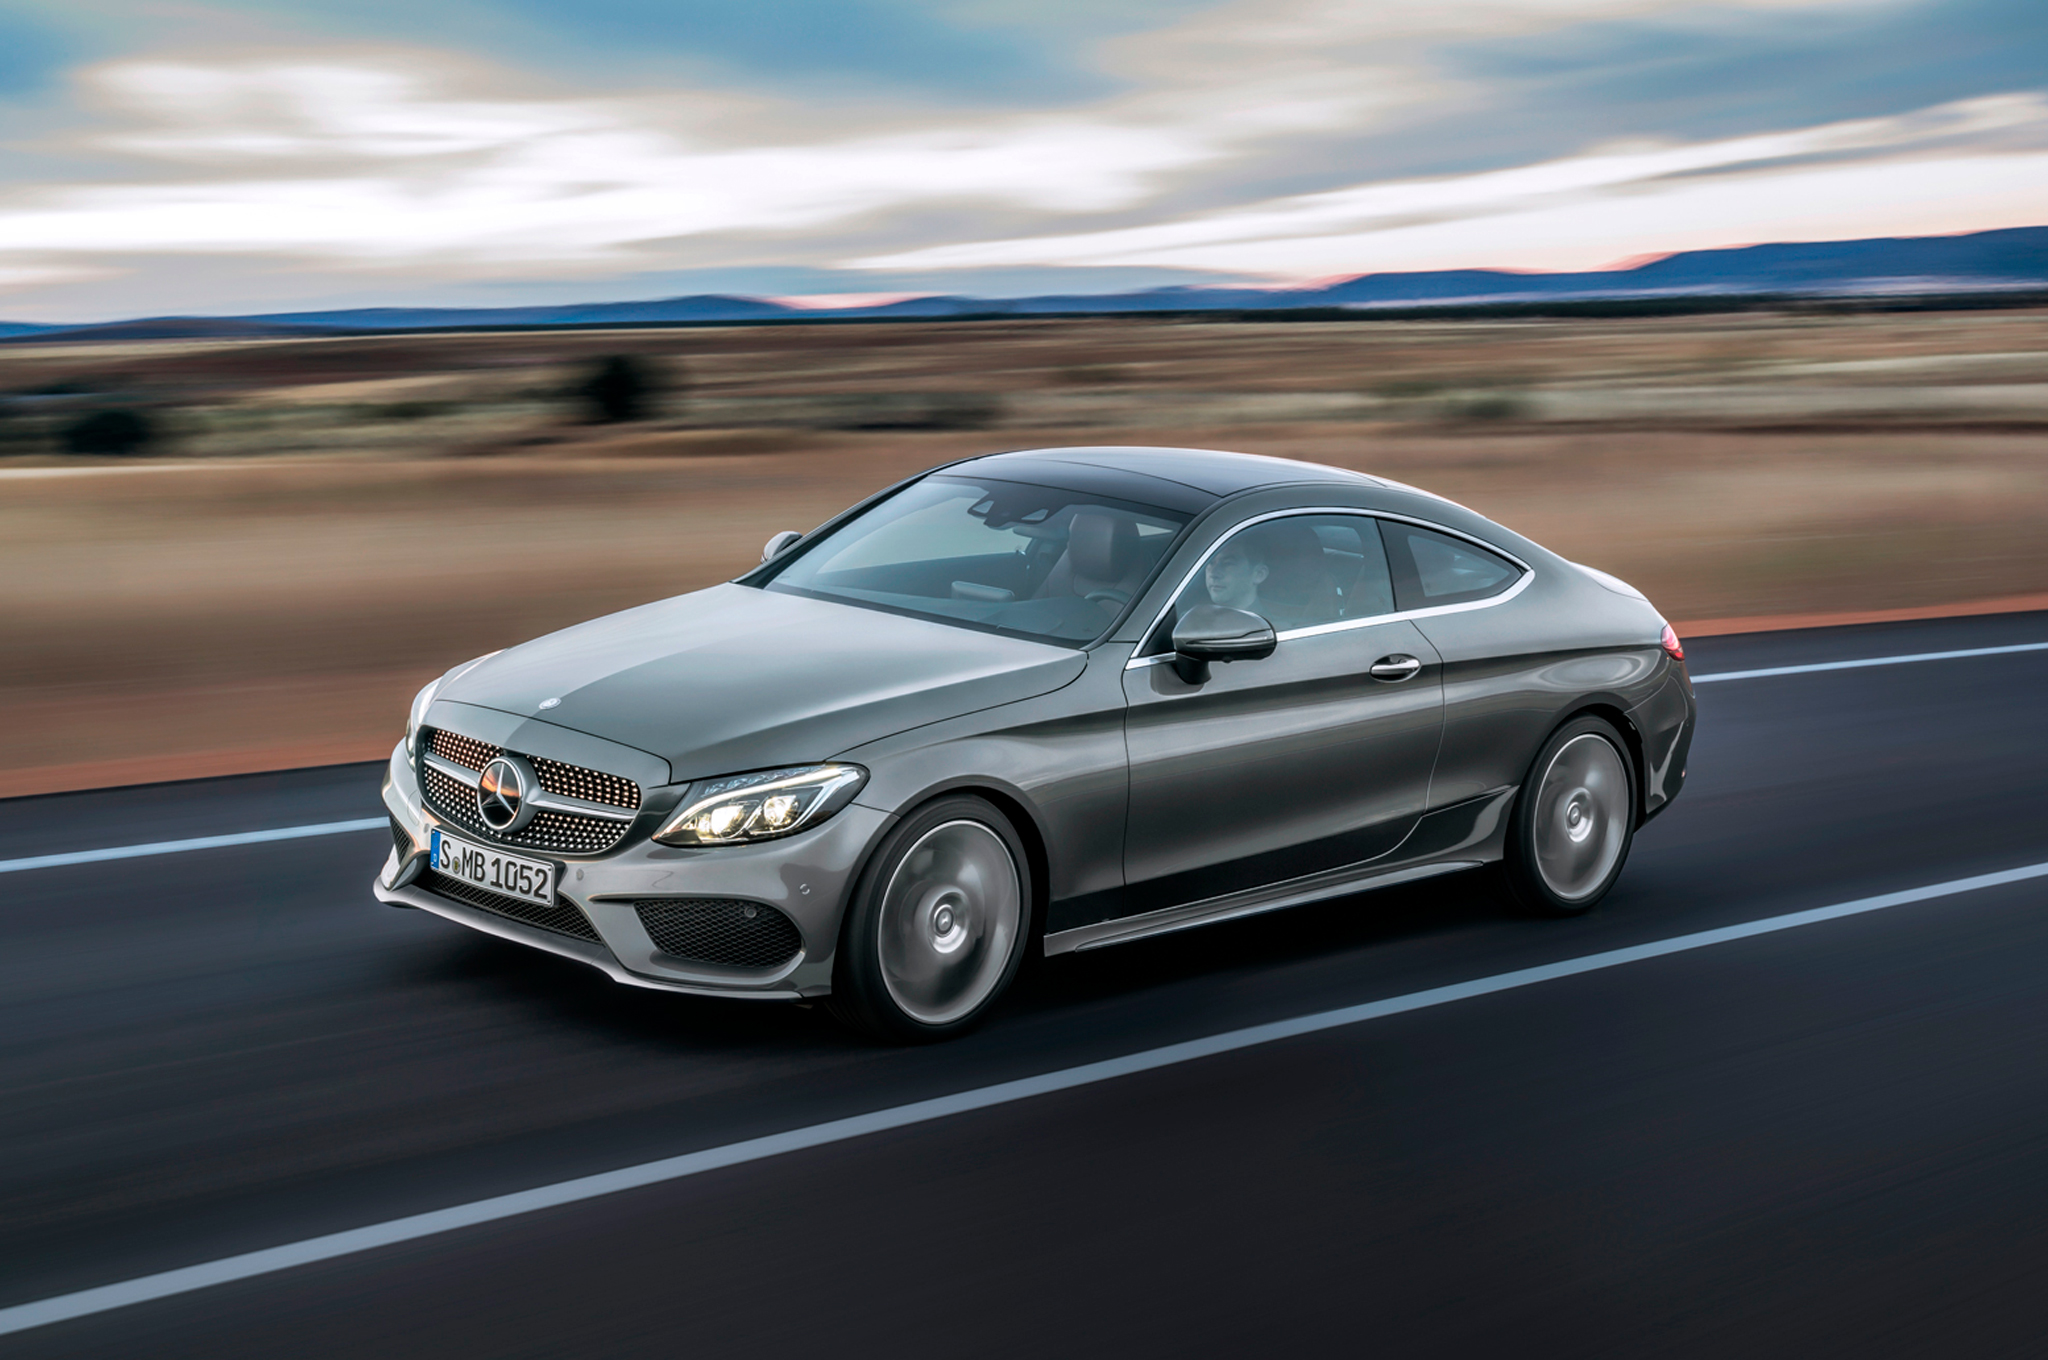 Mercedes Benz C Class Coupe 2017 Hd Wallpapers Free Download